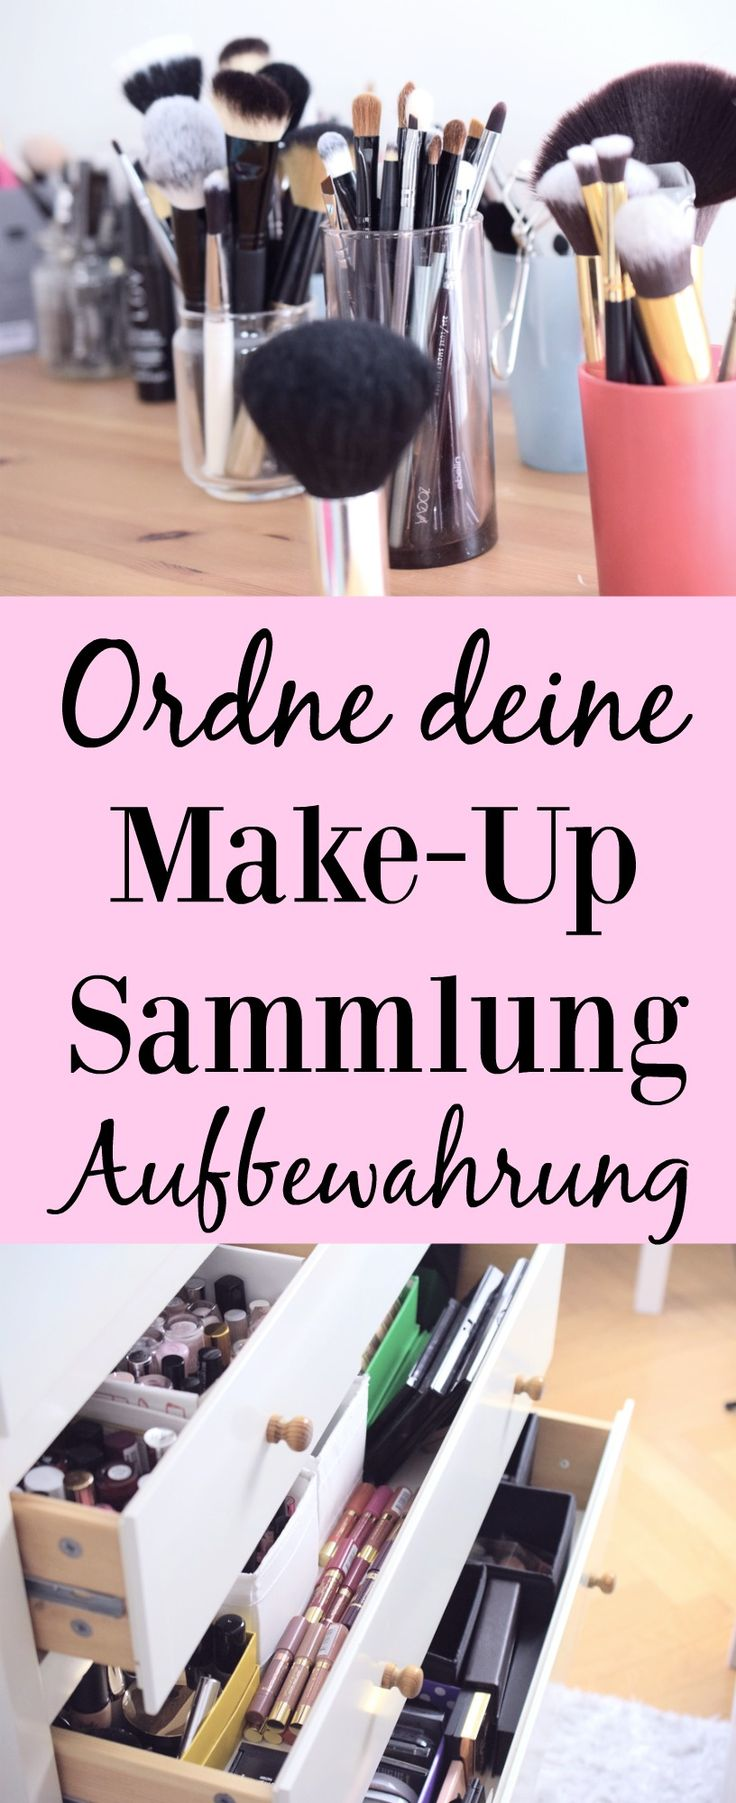 Bring Ordnung in deine Make-Up-Sammlung. So ordnest du deine Make-Up Produkte. Beautyblog, Makeup, Brushes, Pinsel, Kommode, Schminken, Schminkkommode, Lippenstift, Mascara, Wimperntusche, Lipgloss, Blush, Rouge, Powder, Makeup, Foundation, Ordnung.